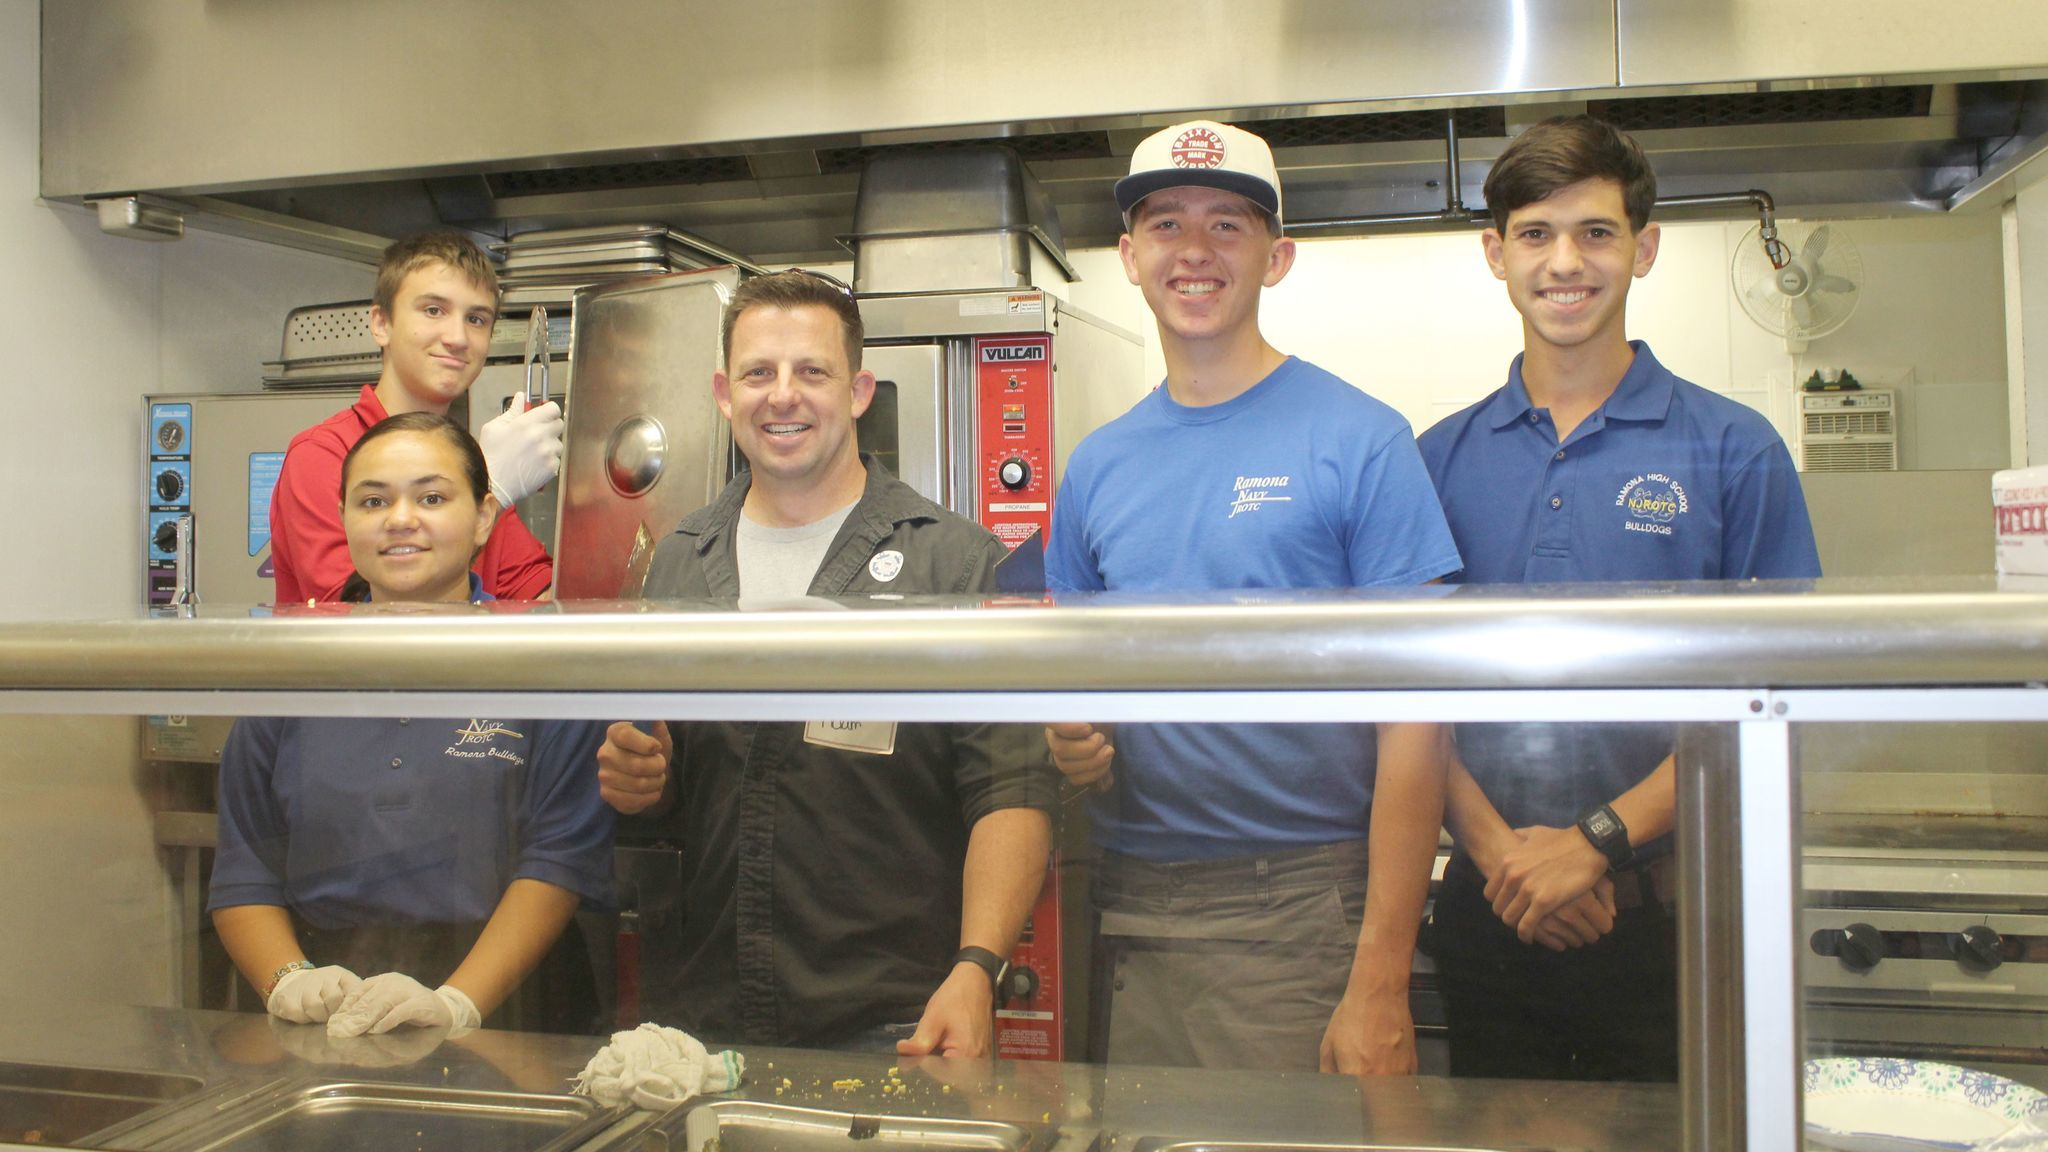 Ramona High School Senior Naval Science Instructor and U.S. Coast Guard Lt. Cmdr. Adam Birst, retired, spends time in the kitchen with NJROTC cadets Michael Smith, Sina Ward, Patrick Myers and Gavin Roche.